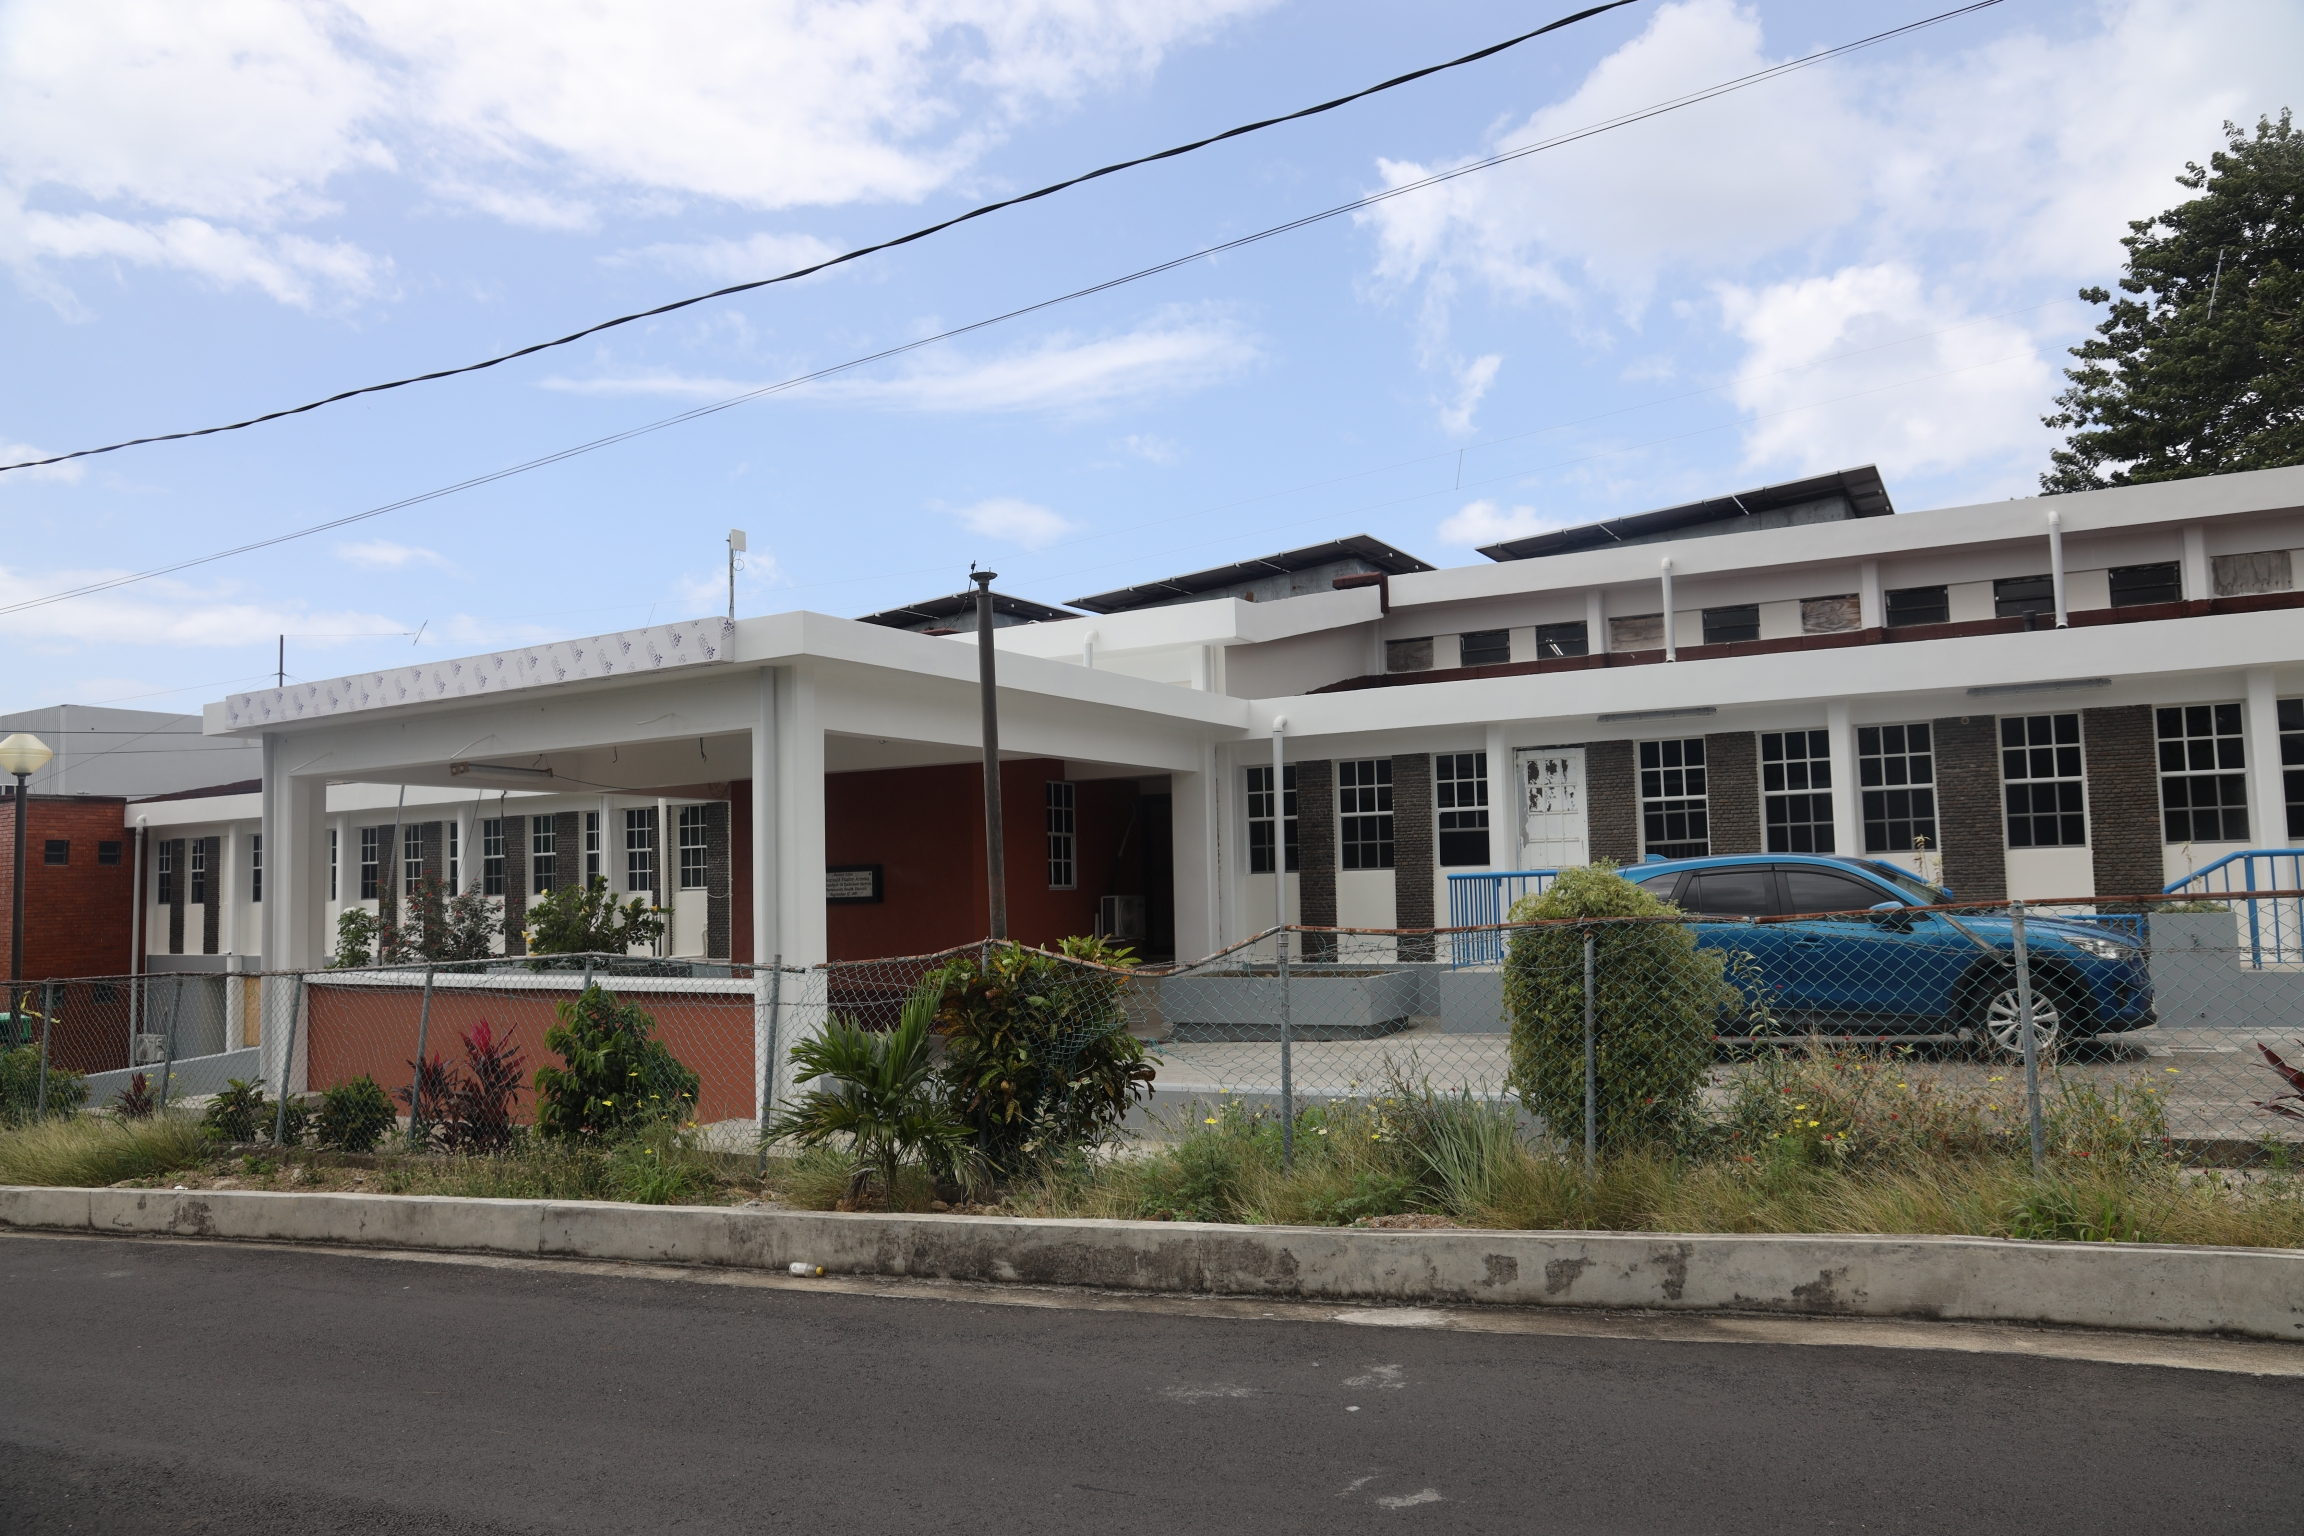 A hospital in Portsmouth, Dominica, newly fitted with solar panels to keep it running when the electrical grid goes down.